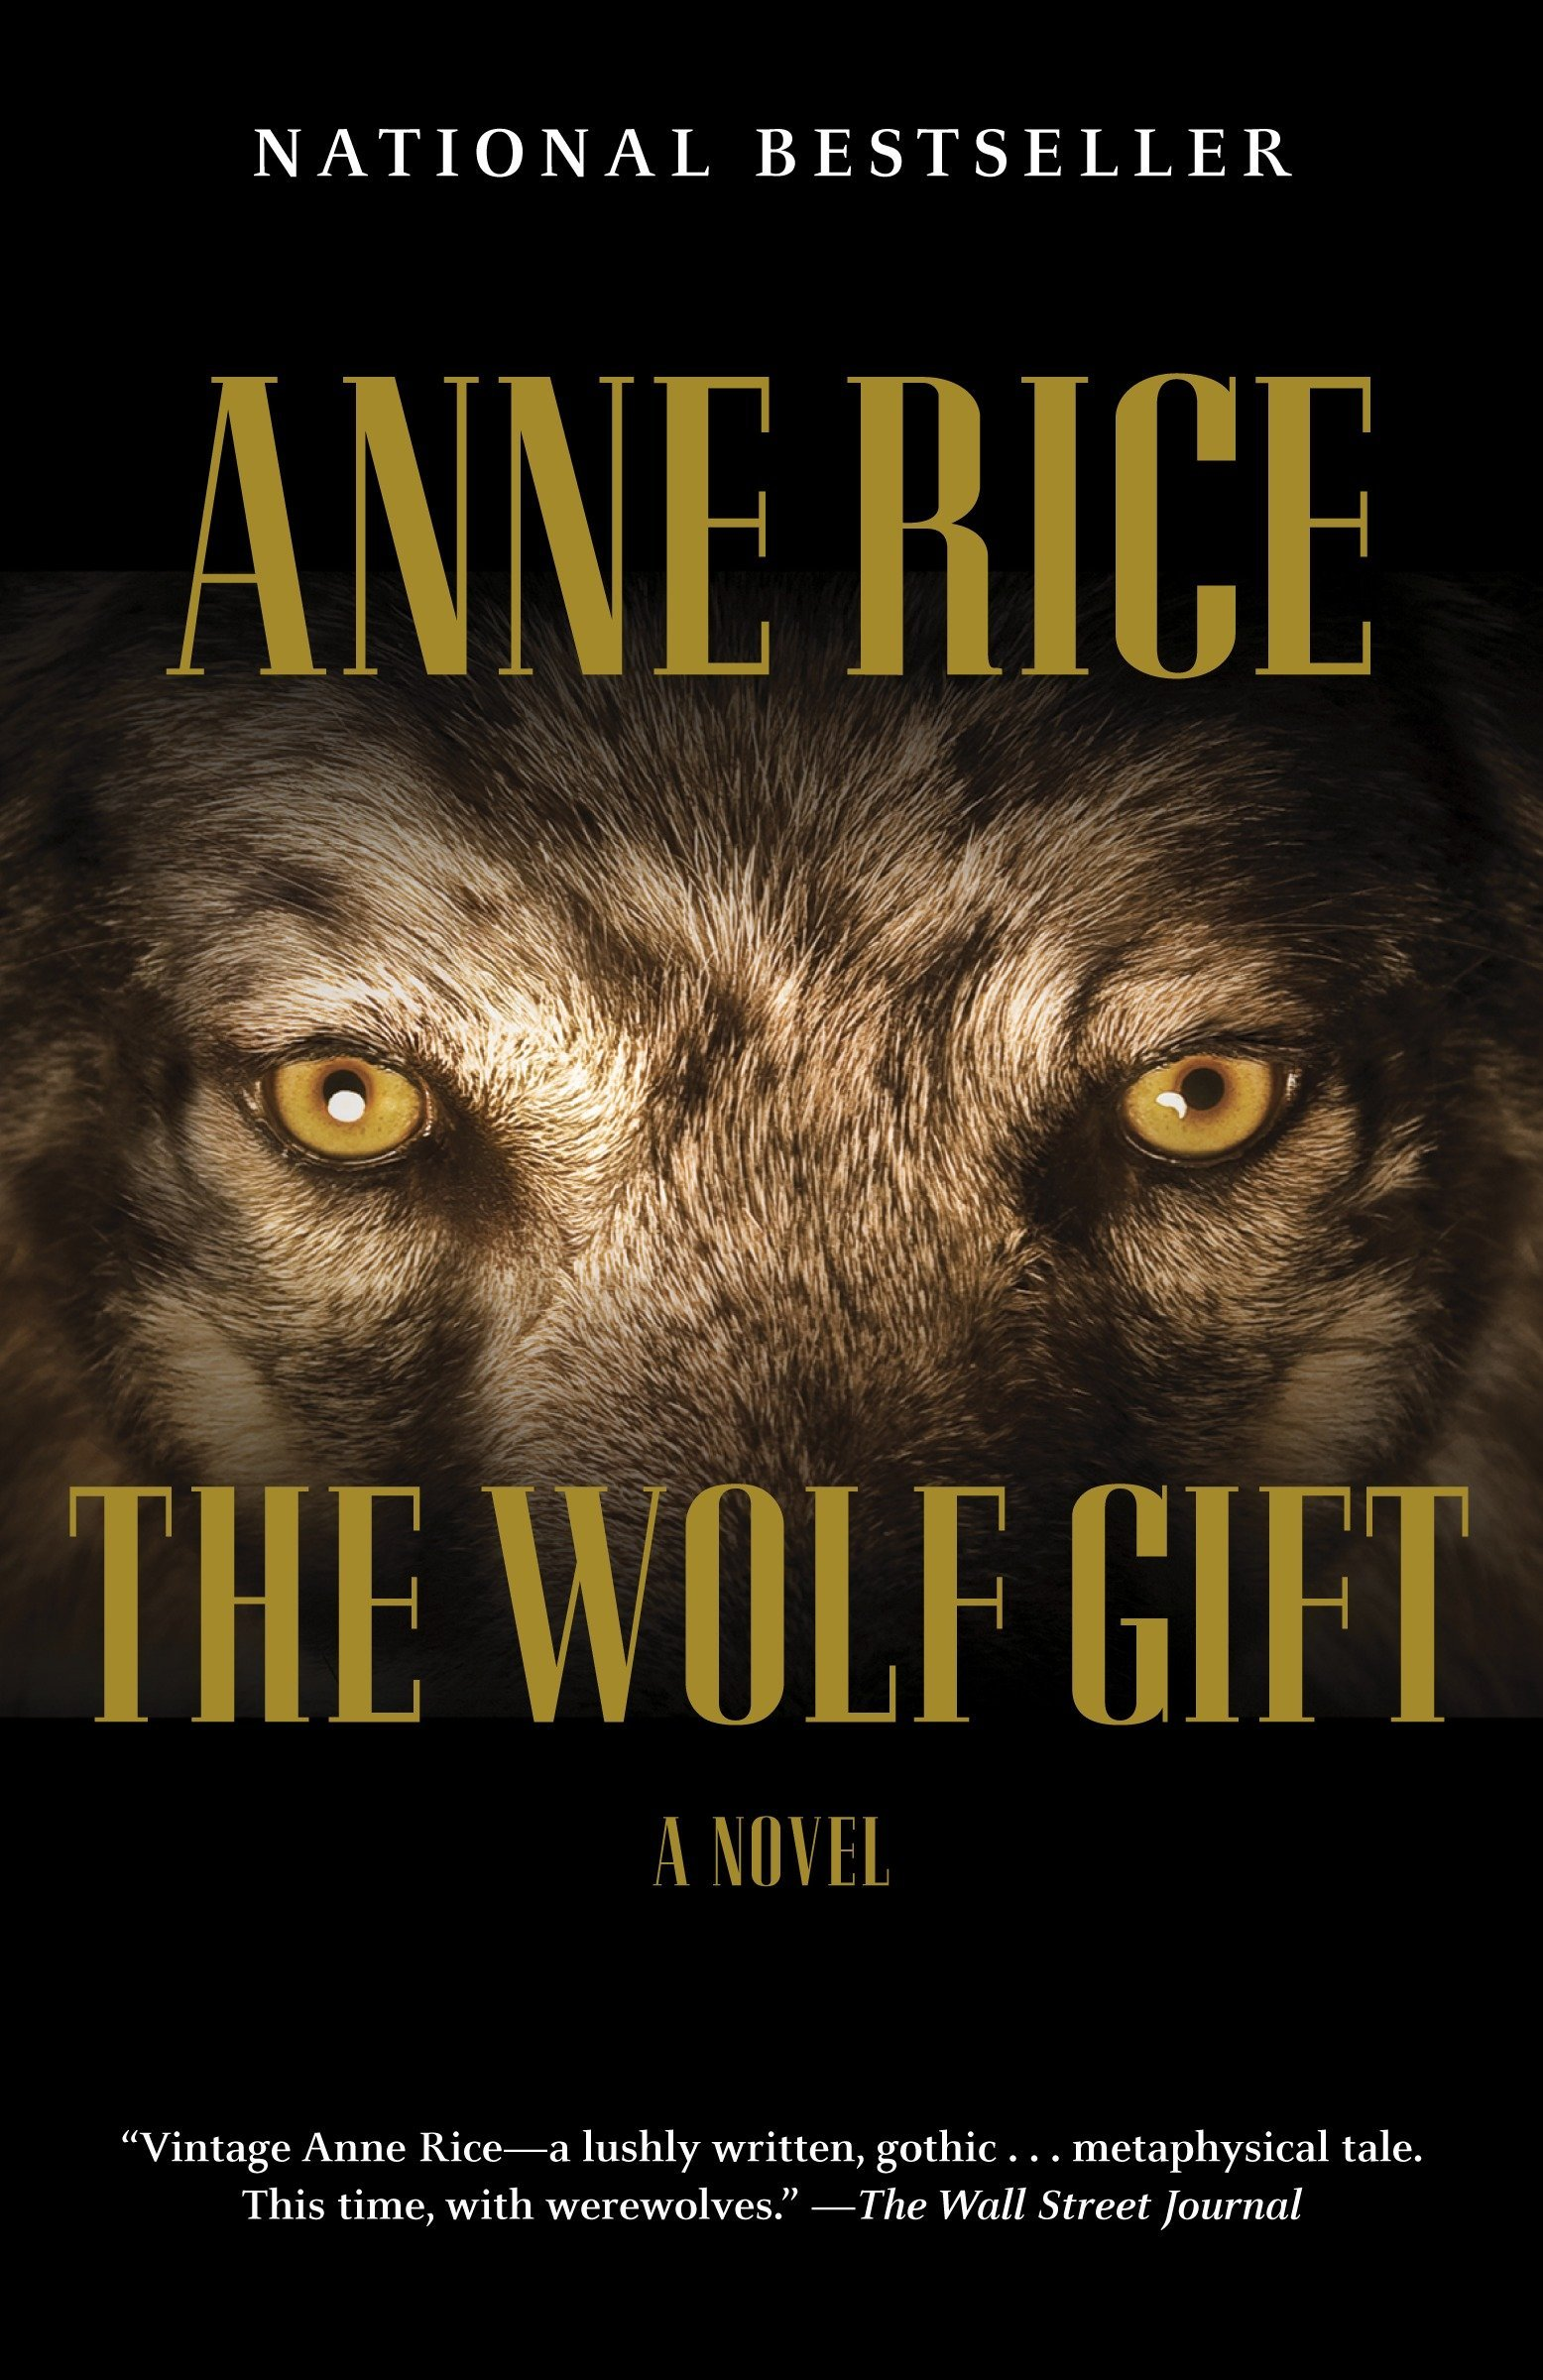 Anne rice writing book hardcover sex price